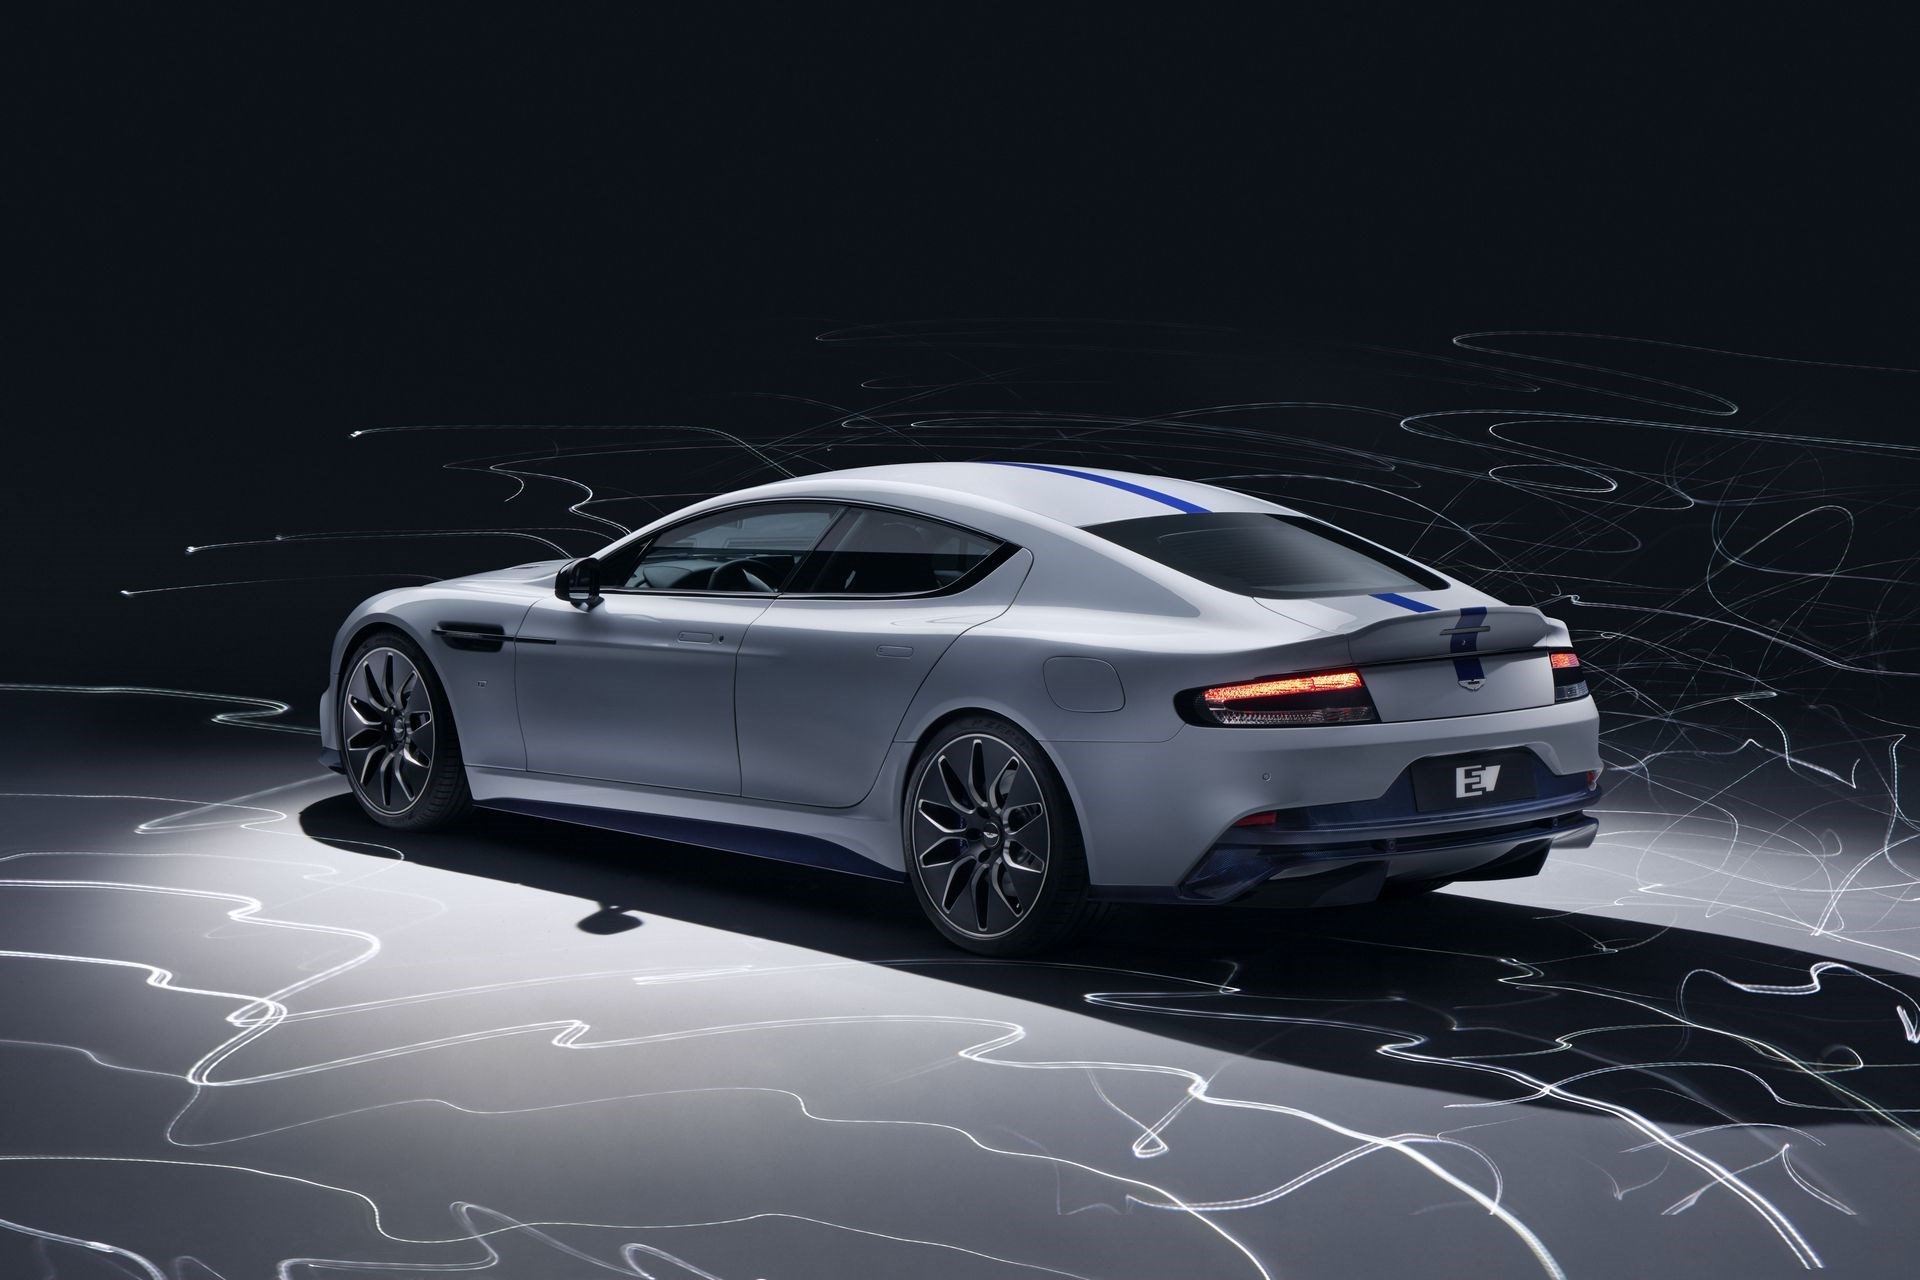 Aston Martin reveals Rapide E, their first fully electric vehicle